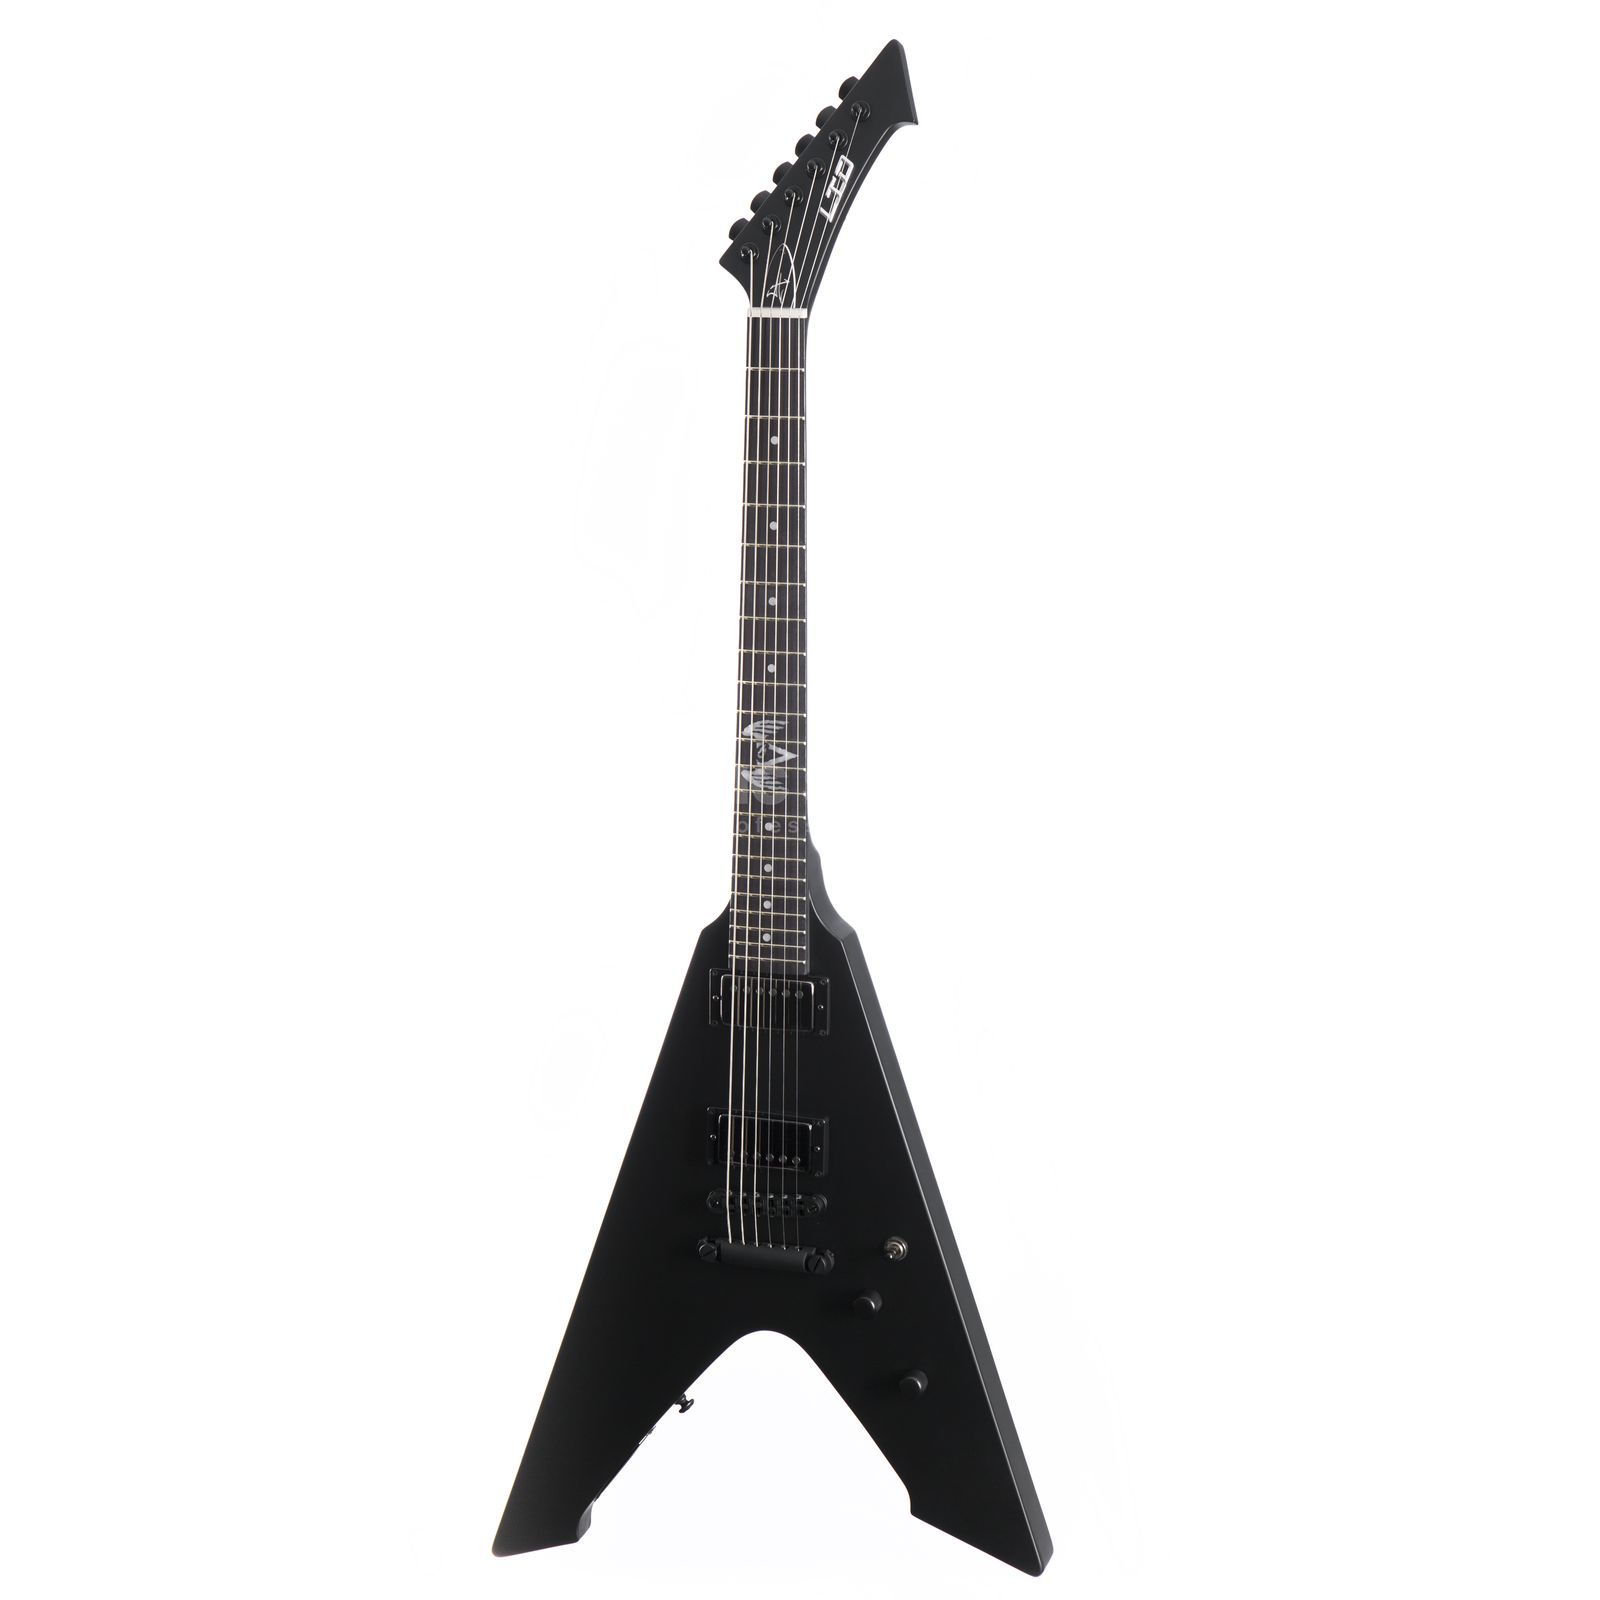 ESP LTD Vulture Black Satin James Hetfield Signature Produktbild